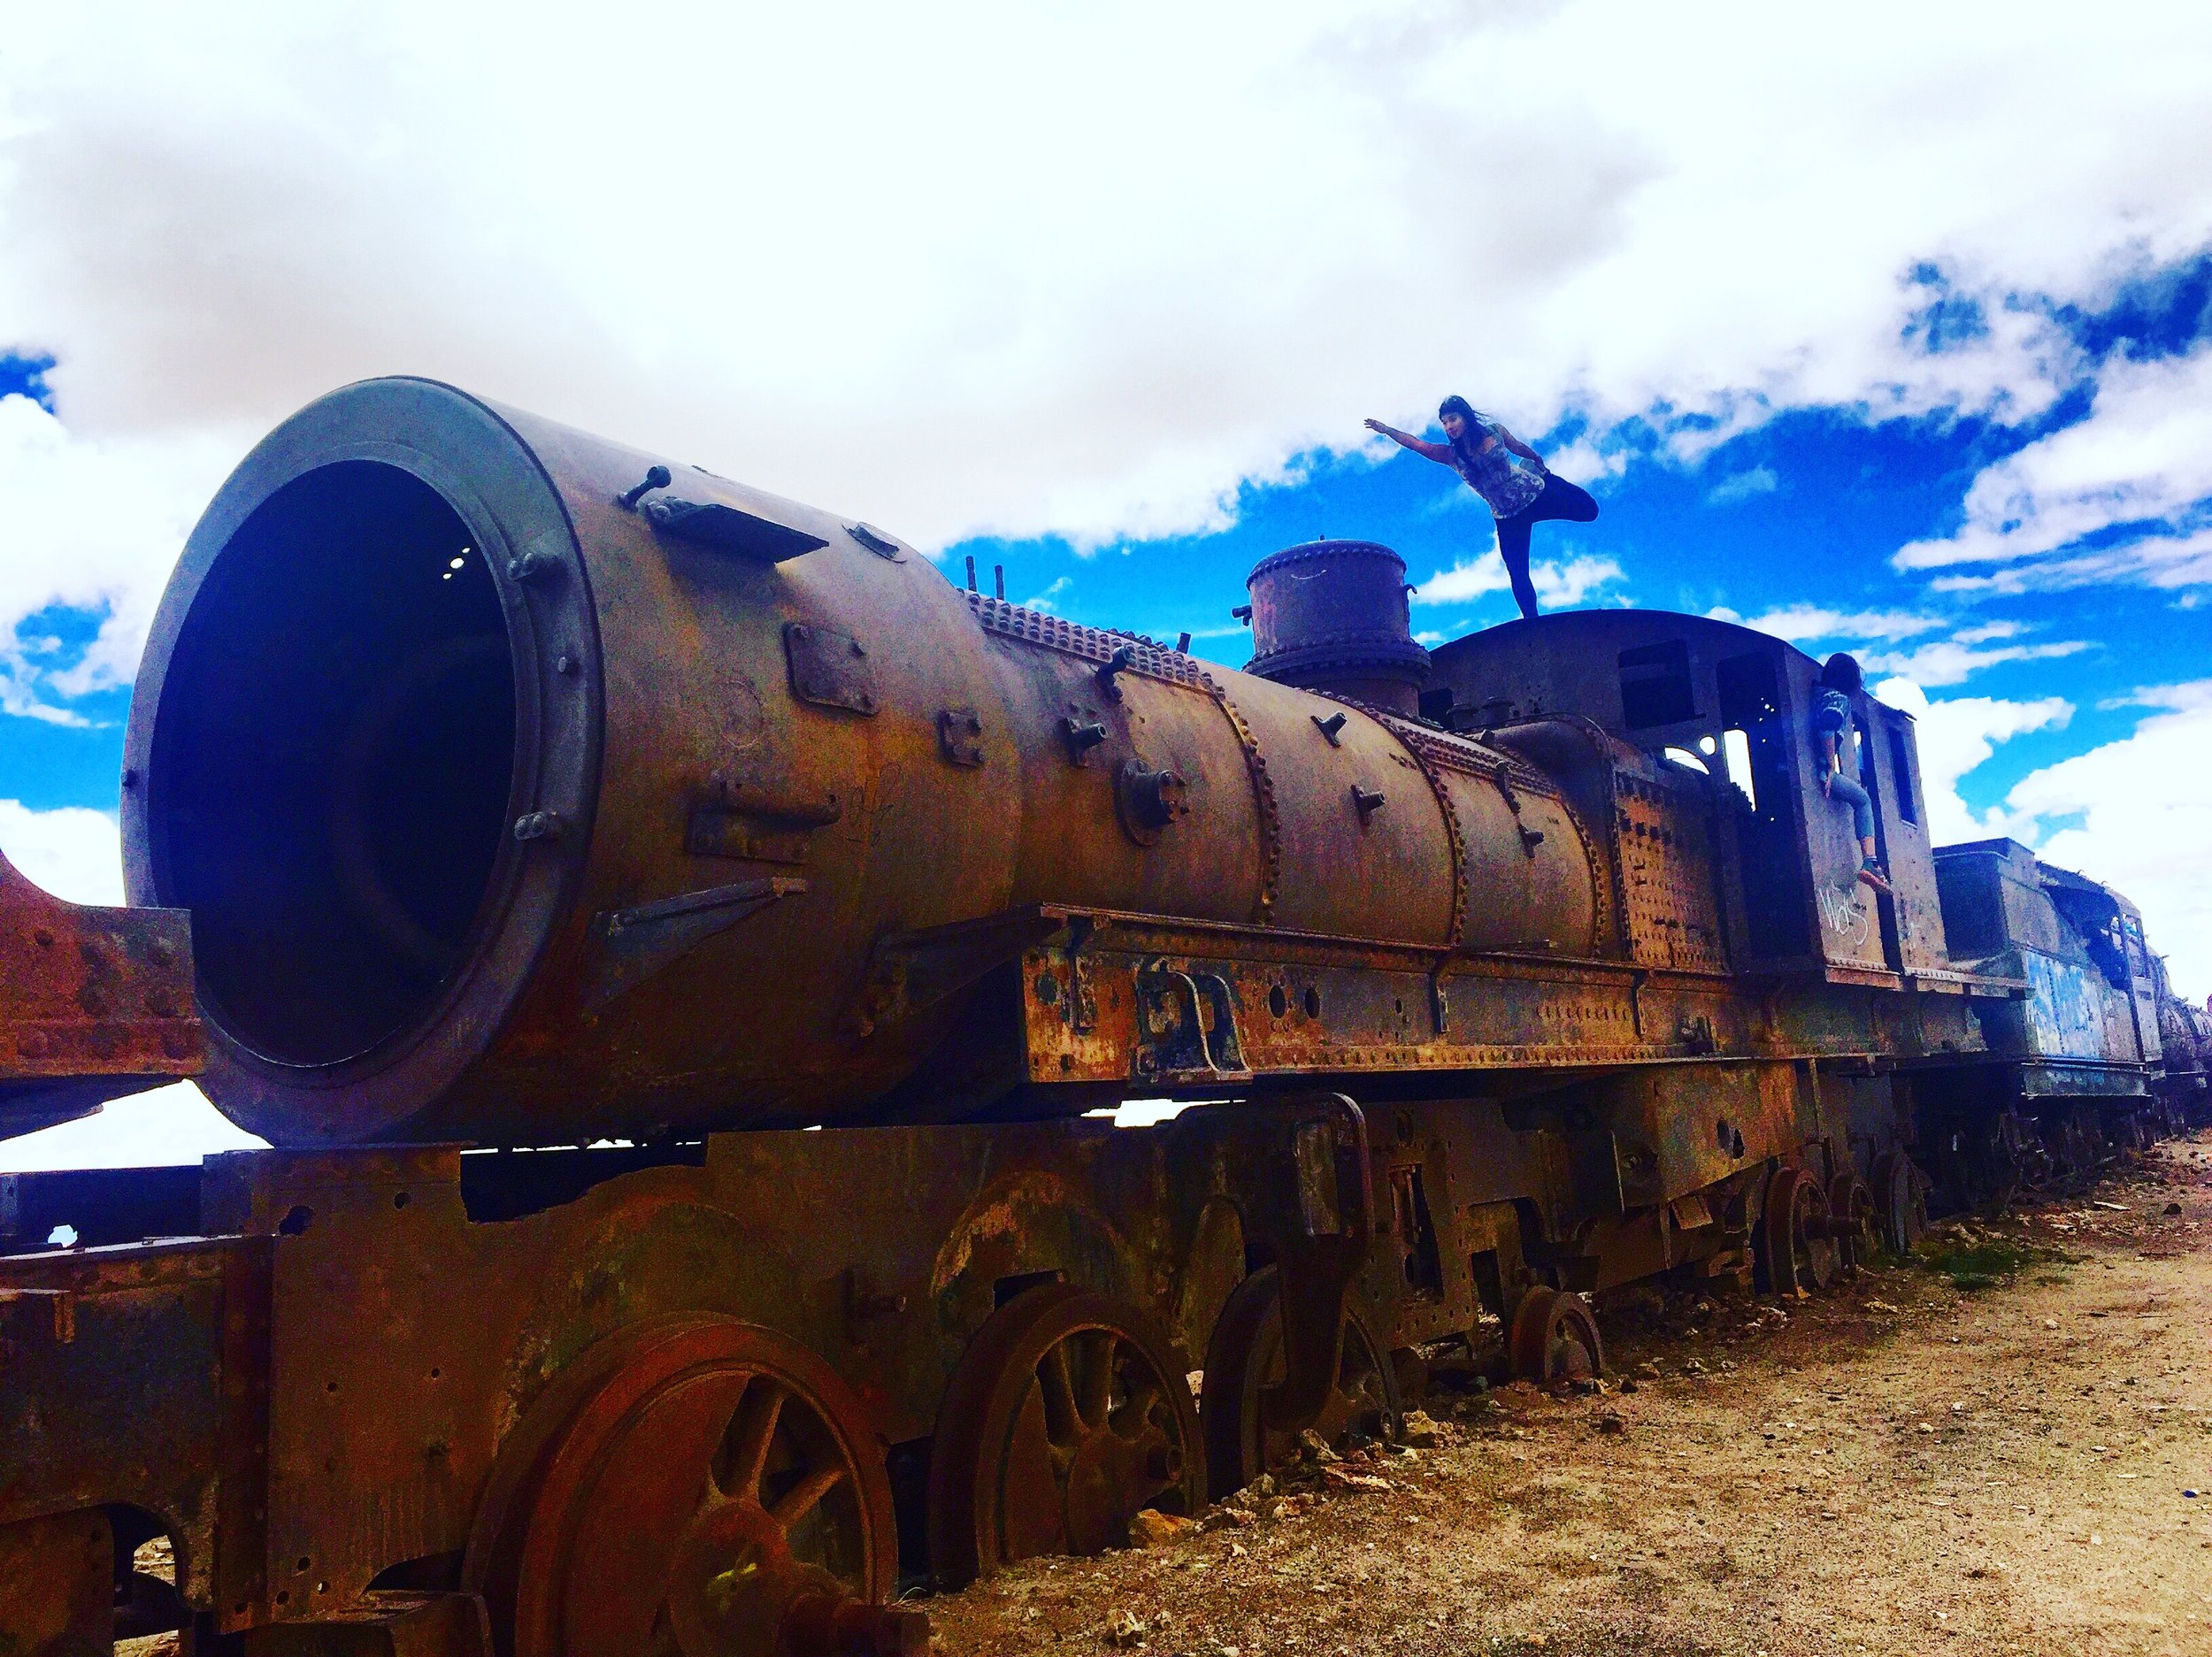 Train Graveyard is one of the first attractions in the tour